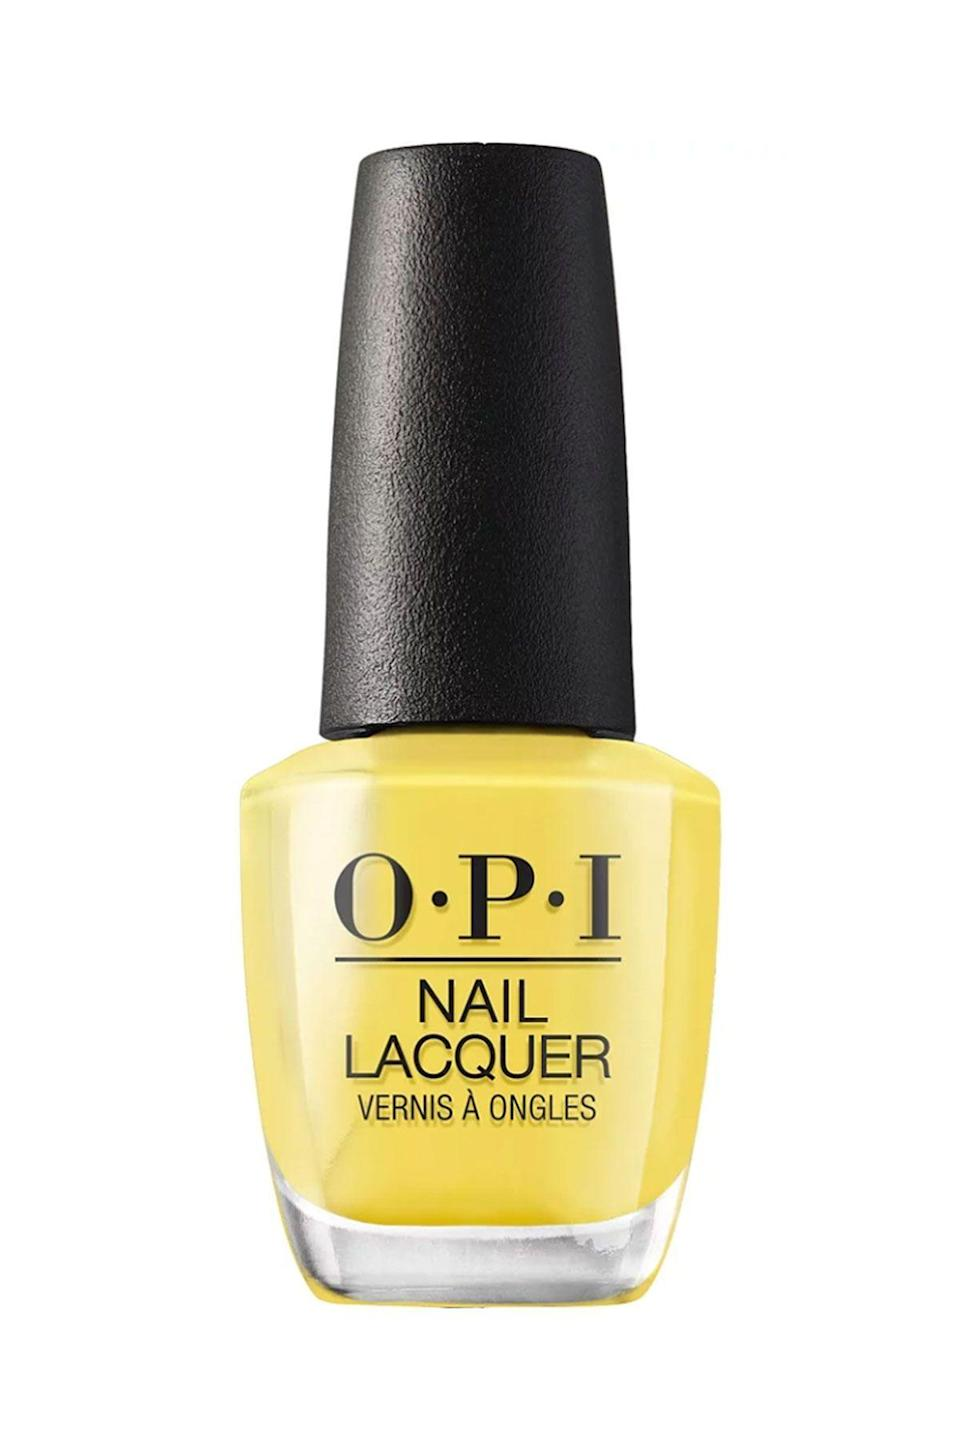 """<p><strong>OPI</strong></p><p>ulta.com</p><p><strong>$10.50</strong></p><p><a href=""""https://go.redirectingat.com?id=74968X1596630&url=https%3A%2F%2Fwww.ulta.com%2Fmexico-city-nail-lacquer-collection%3FproductId%3Dpimprod2013284&sref=https%3A%2F%2Fwww.seventeen.com%2Fbeauty%2Fnails%2Fg2741%2Fbest-spring-nail-colors%2F"""" rel=""""nofollow noopener"""" target=""""_blank"""" data-ylk=""""slk:SHOP NOW"""" class=""""link rapid-noclick-resp"""">SHOP NOW</a></p><p>It doesn't get any more spring than a fresh yellow polish. If you're looking for a sunny shade to brighten your mood post-winter, try this lemon-yellow hue.</p>"""